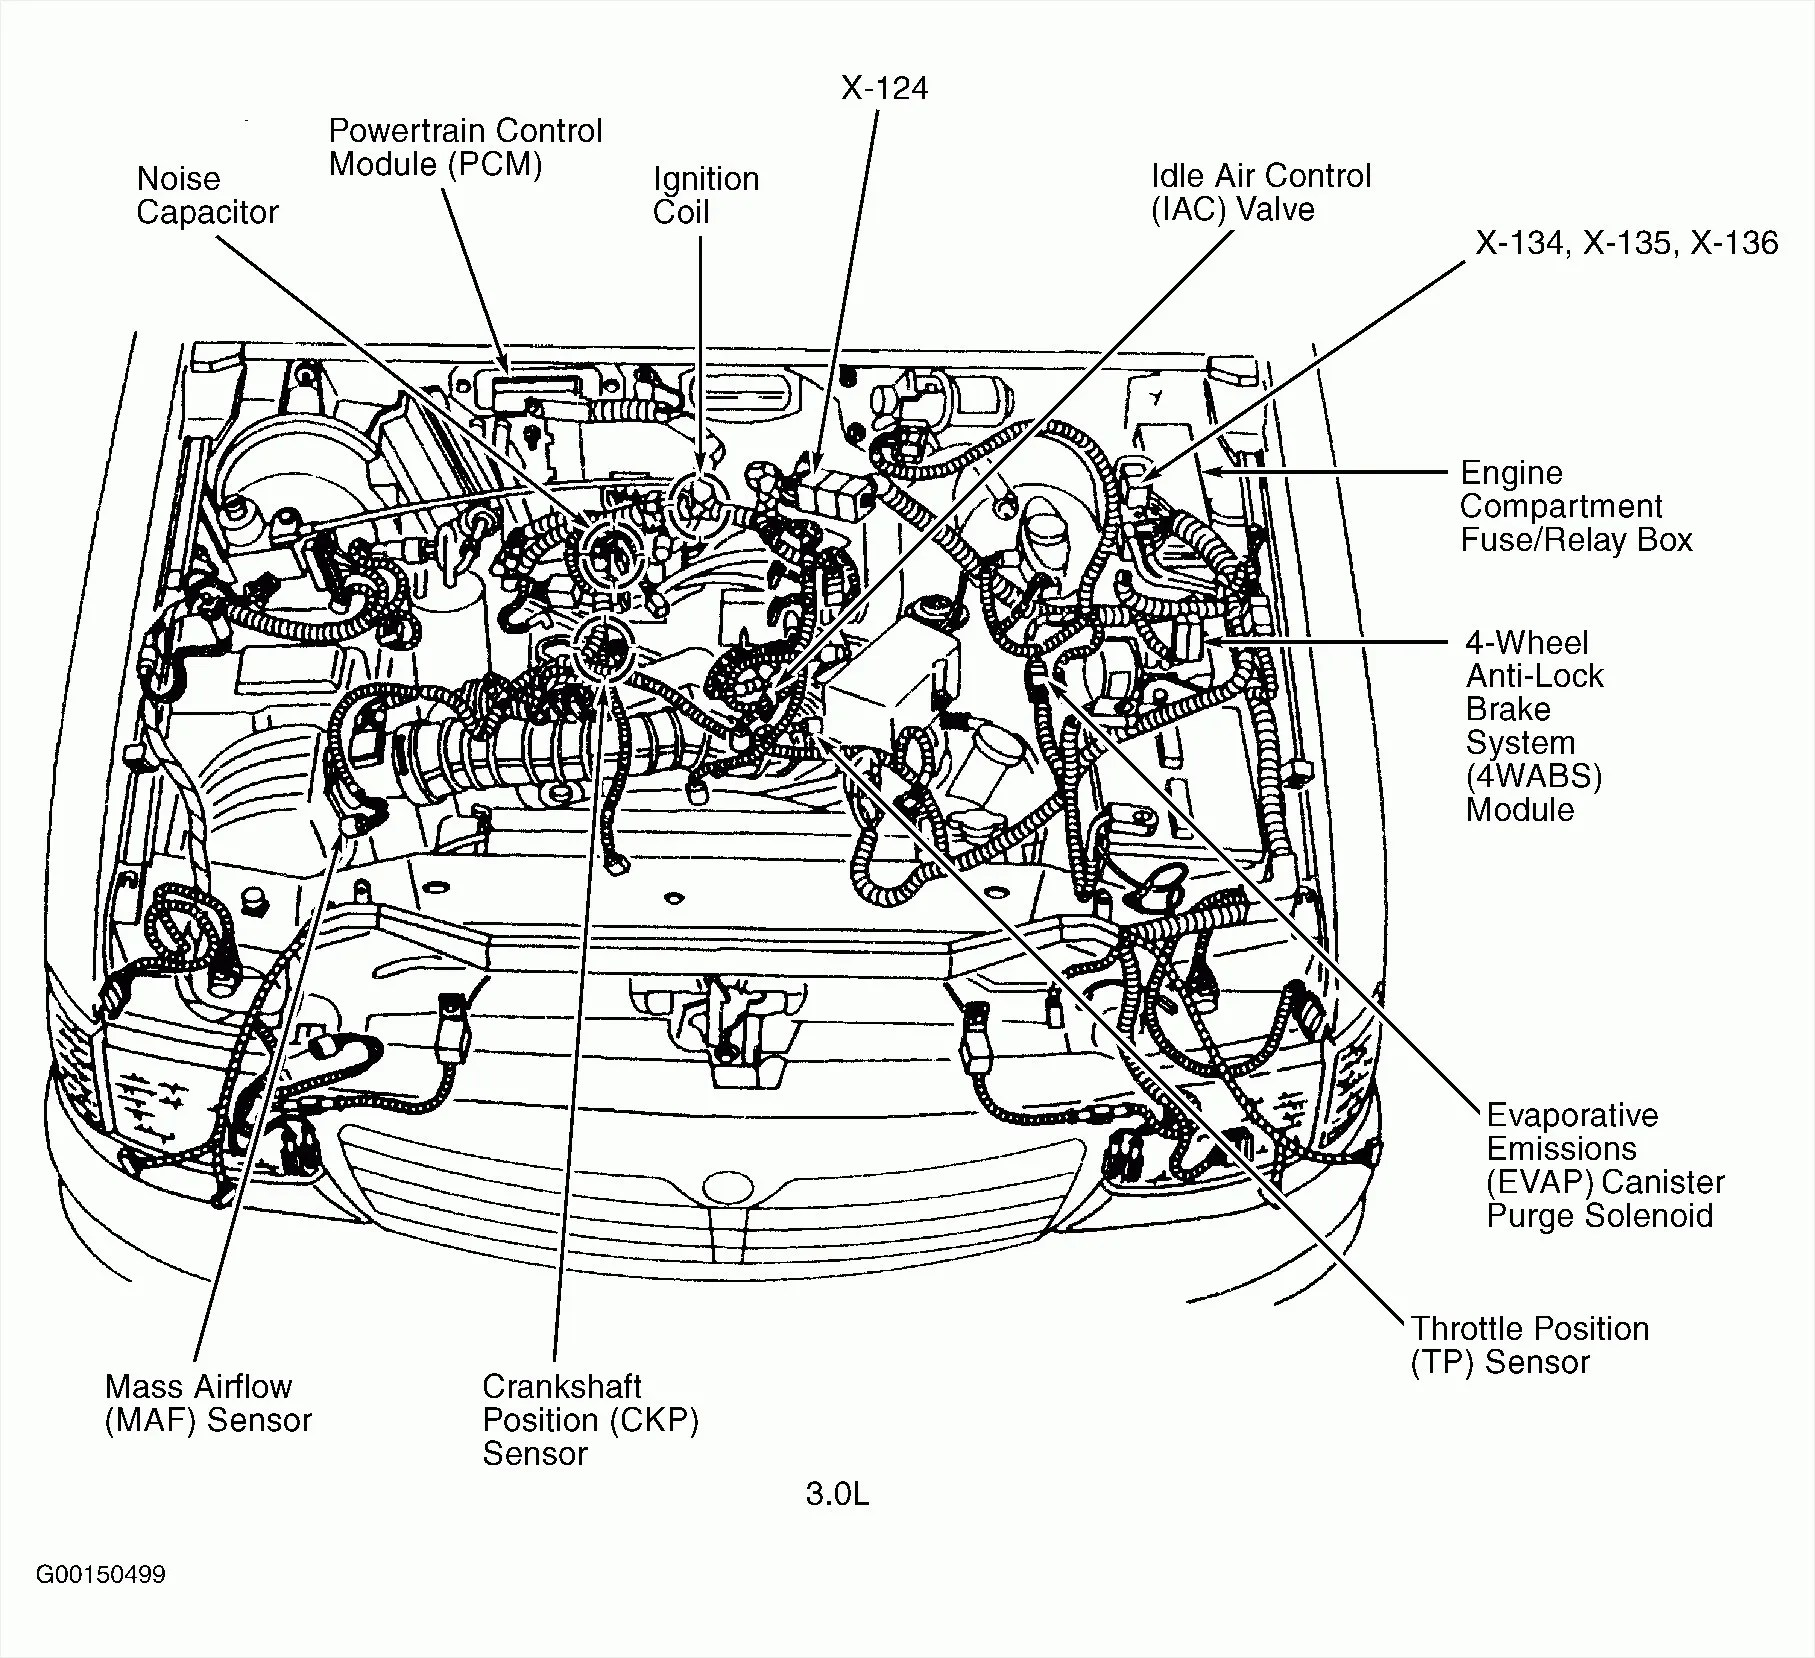 hight resolution of audi 1 8t engine diagram wiring diagram load 1999 audi a4 engine diagram wiring diagram toolbox